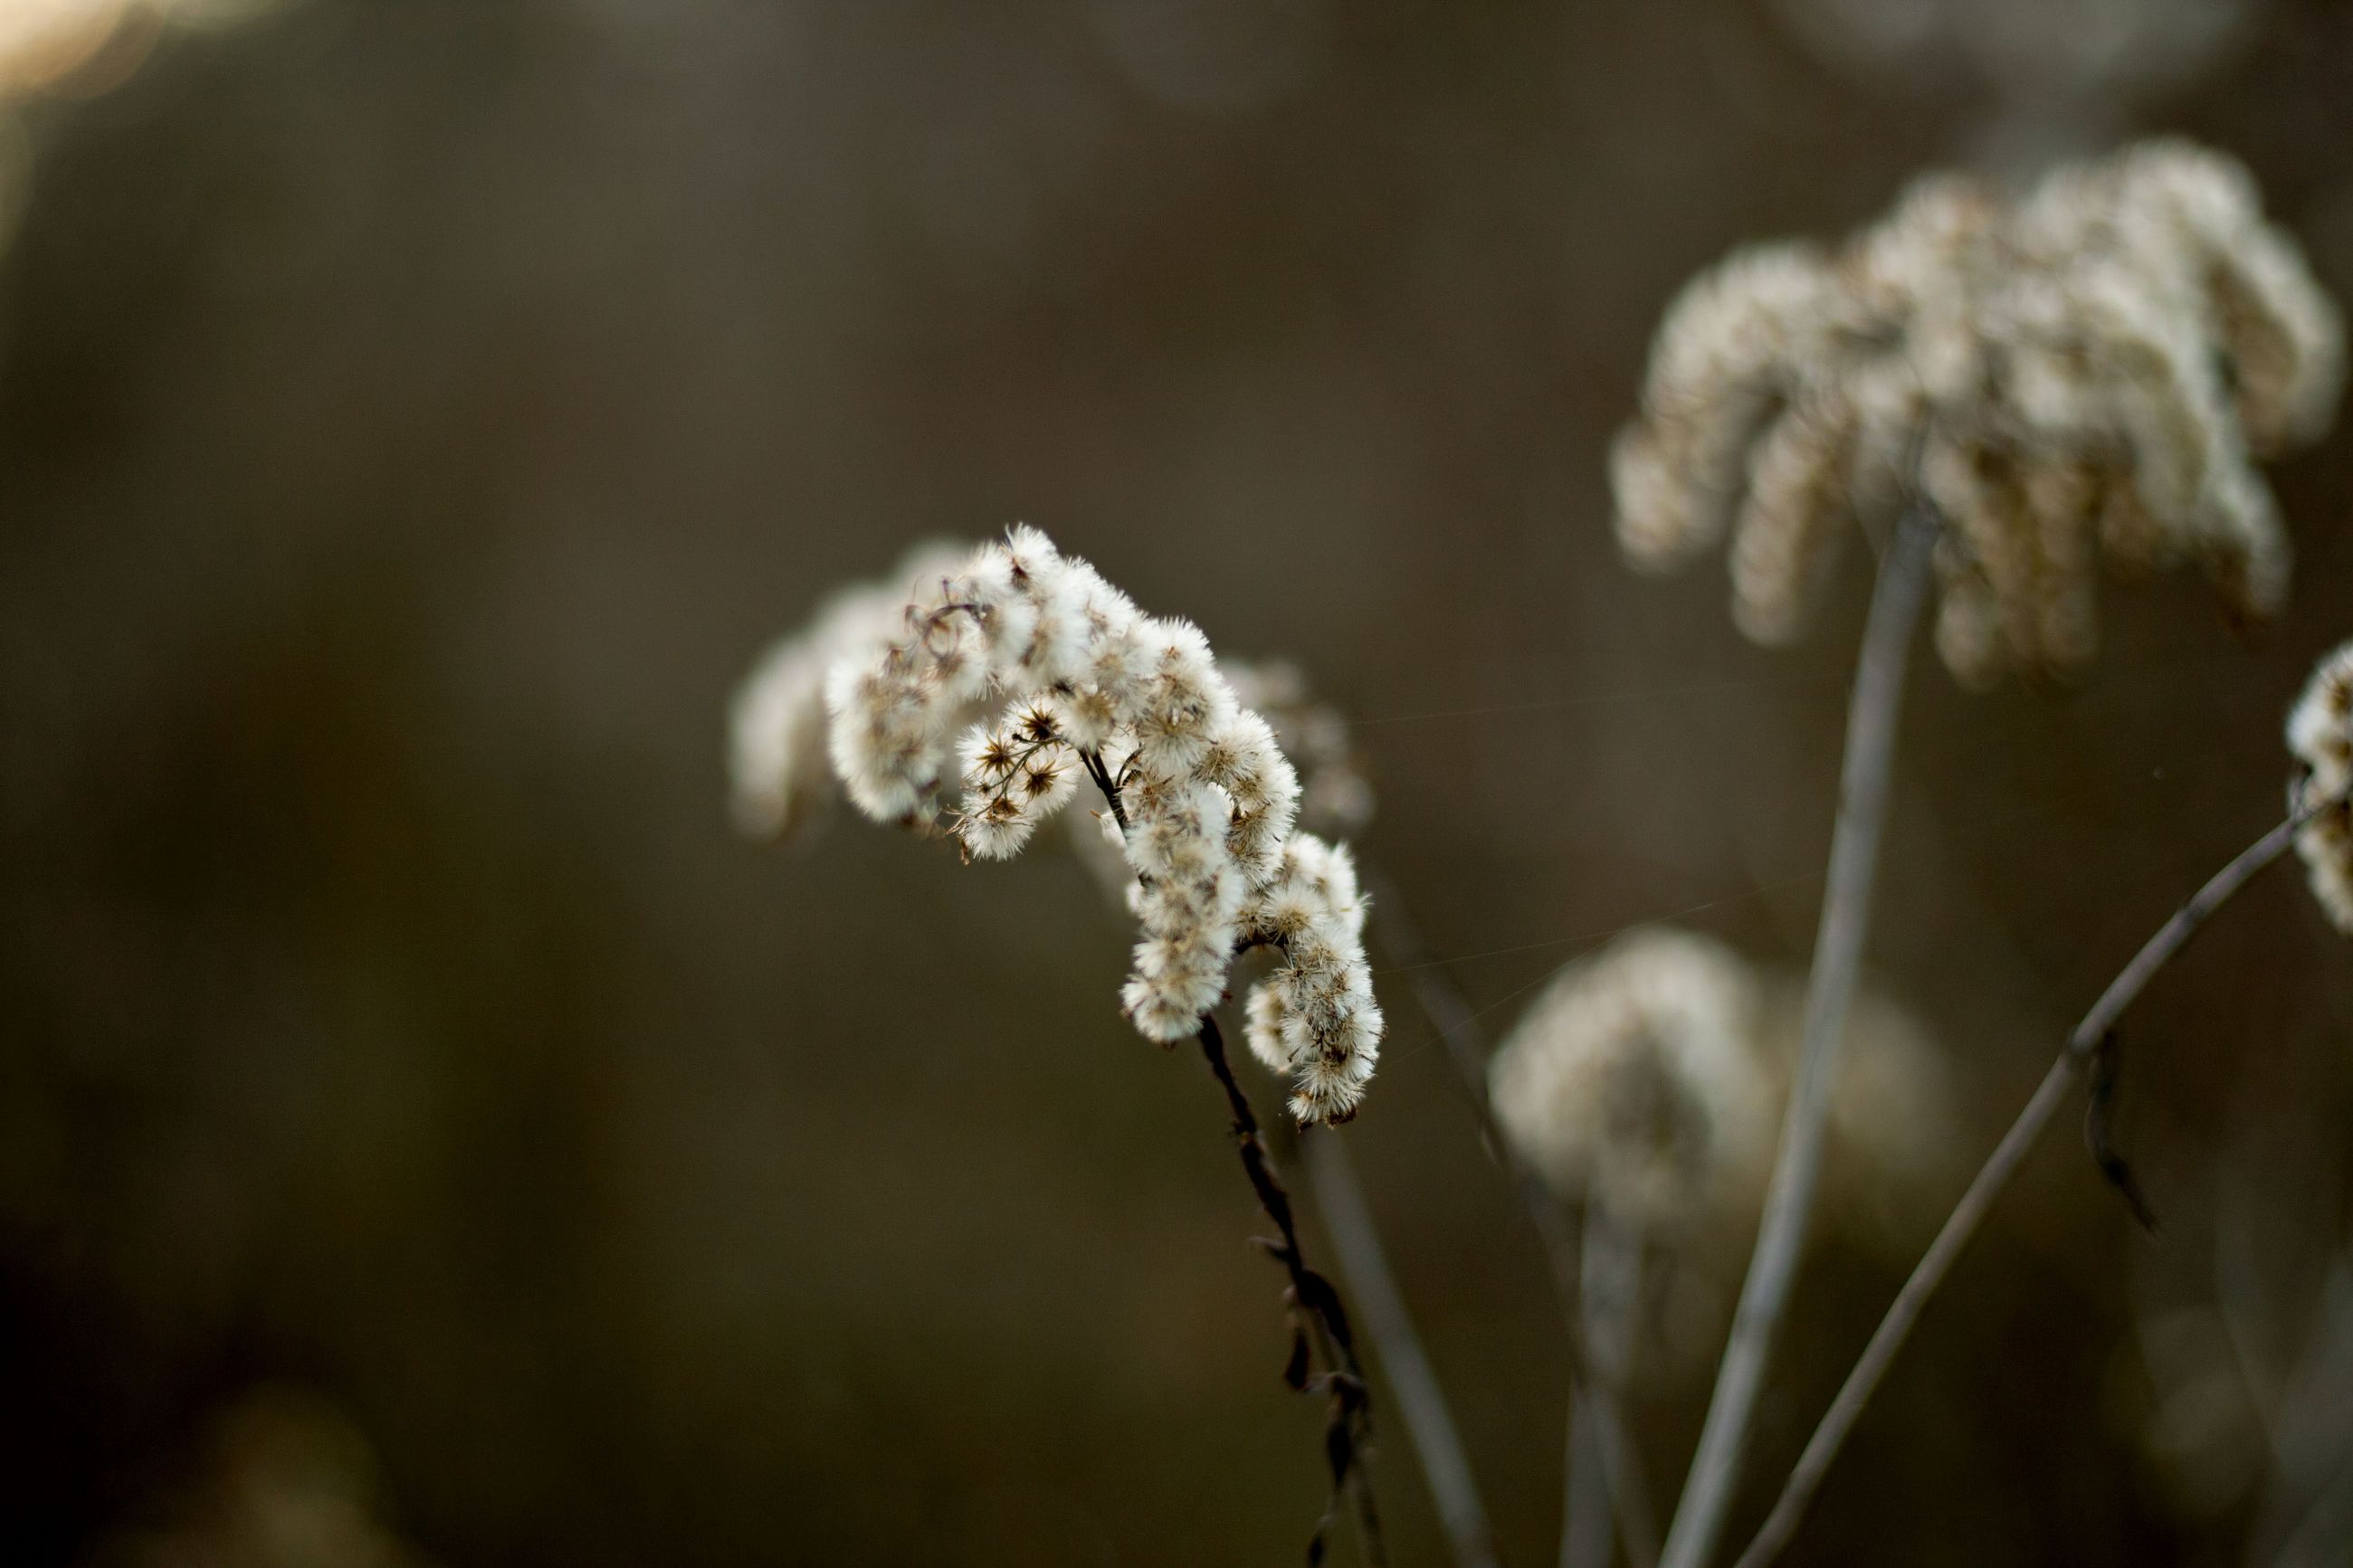 fragility, nature, plant, growth, beauty in nature, close-up, flower, no people, outdoors, day, flower head, freshness